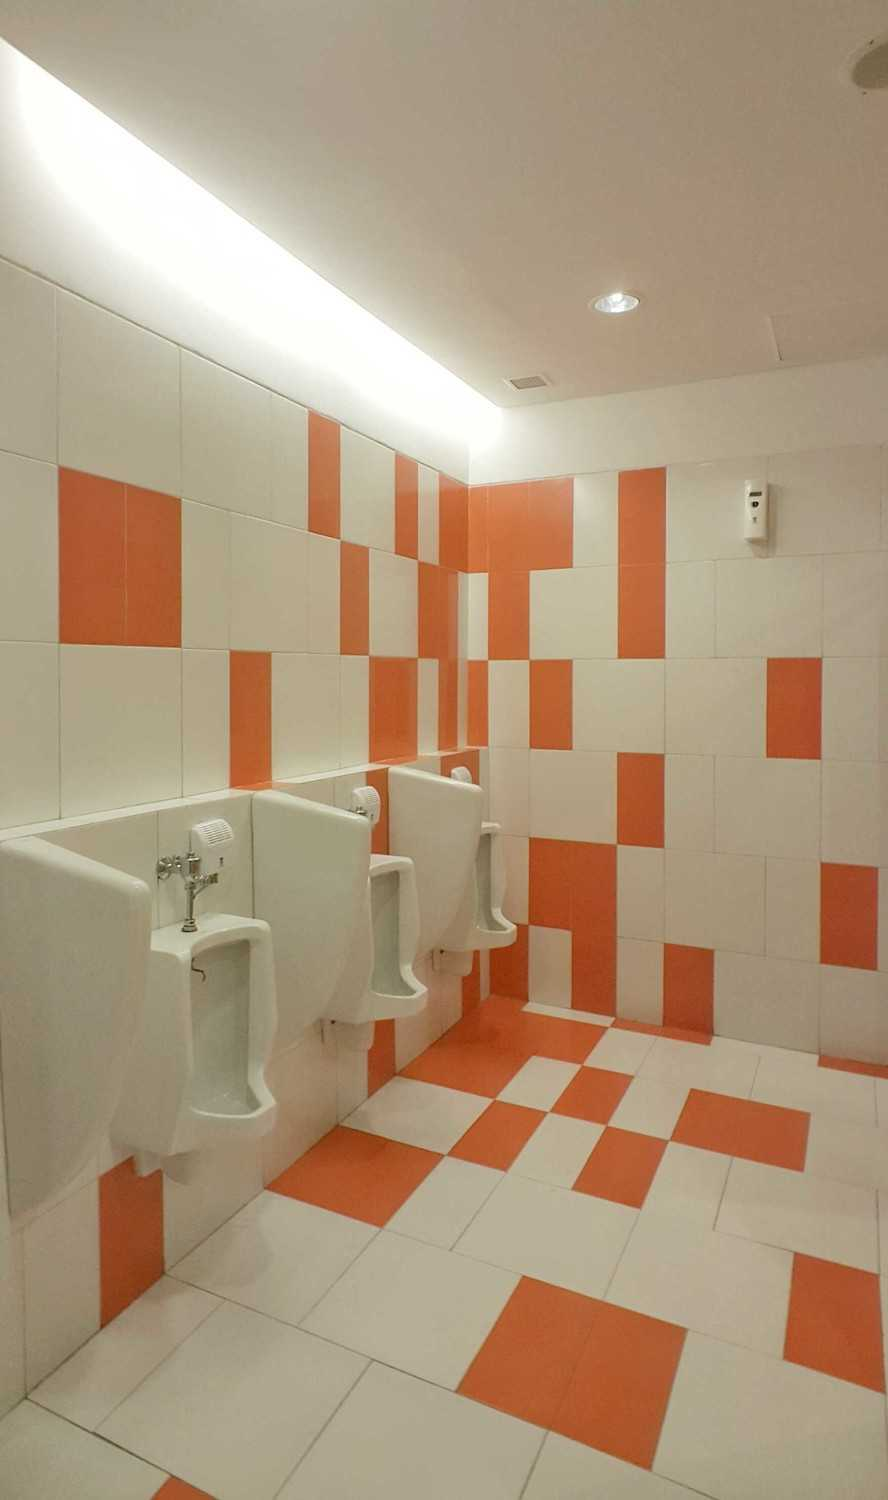 Parametr Indonesia The Park Mall Waterpark Bali Tuban, Bali Tuban, Bali Toilet  19038